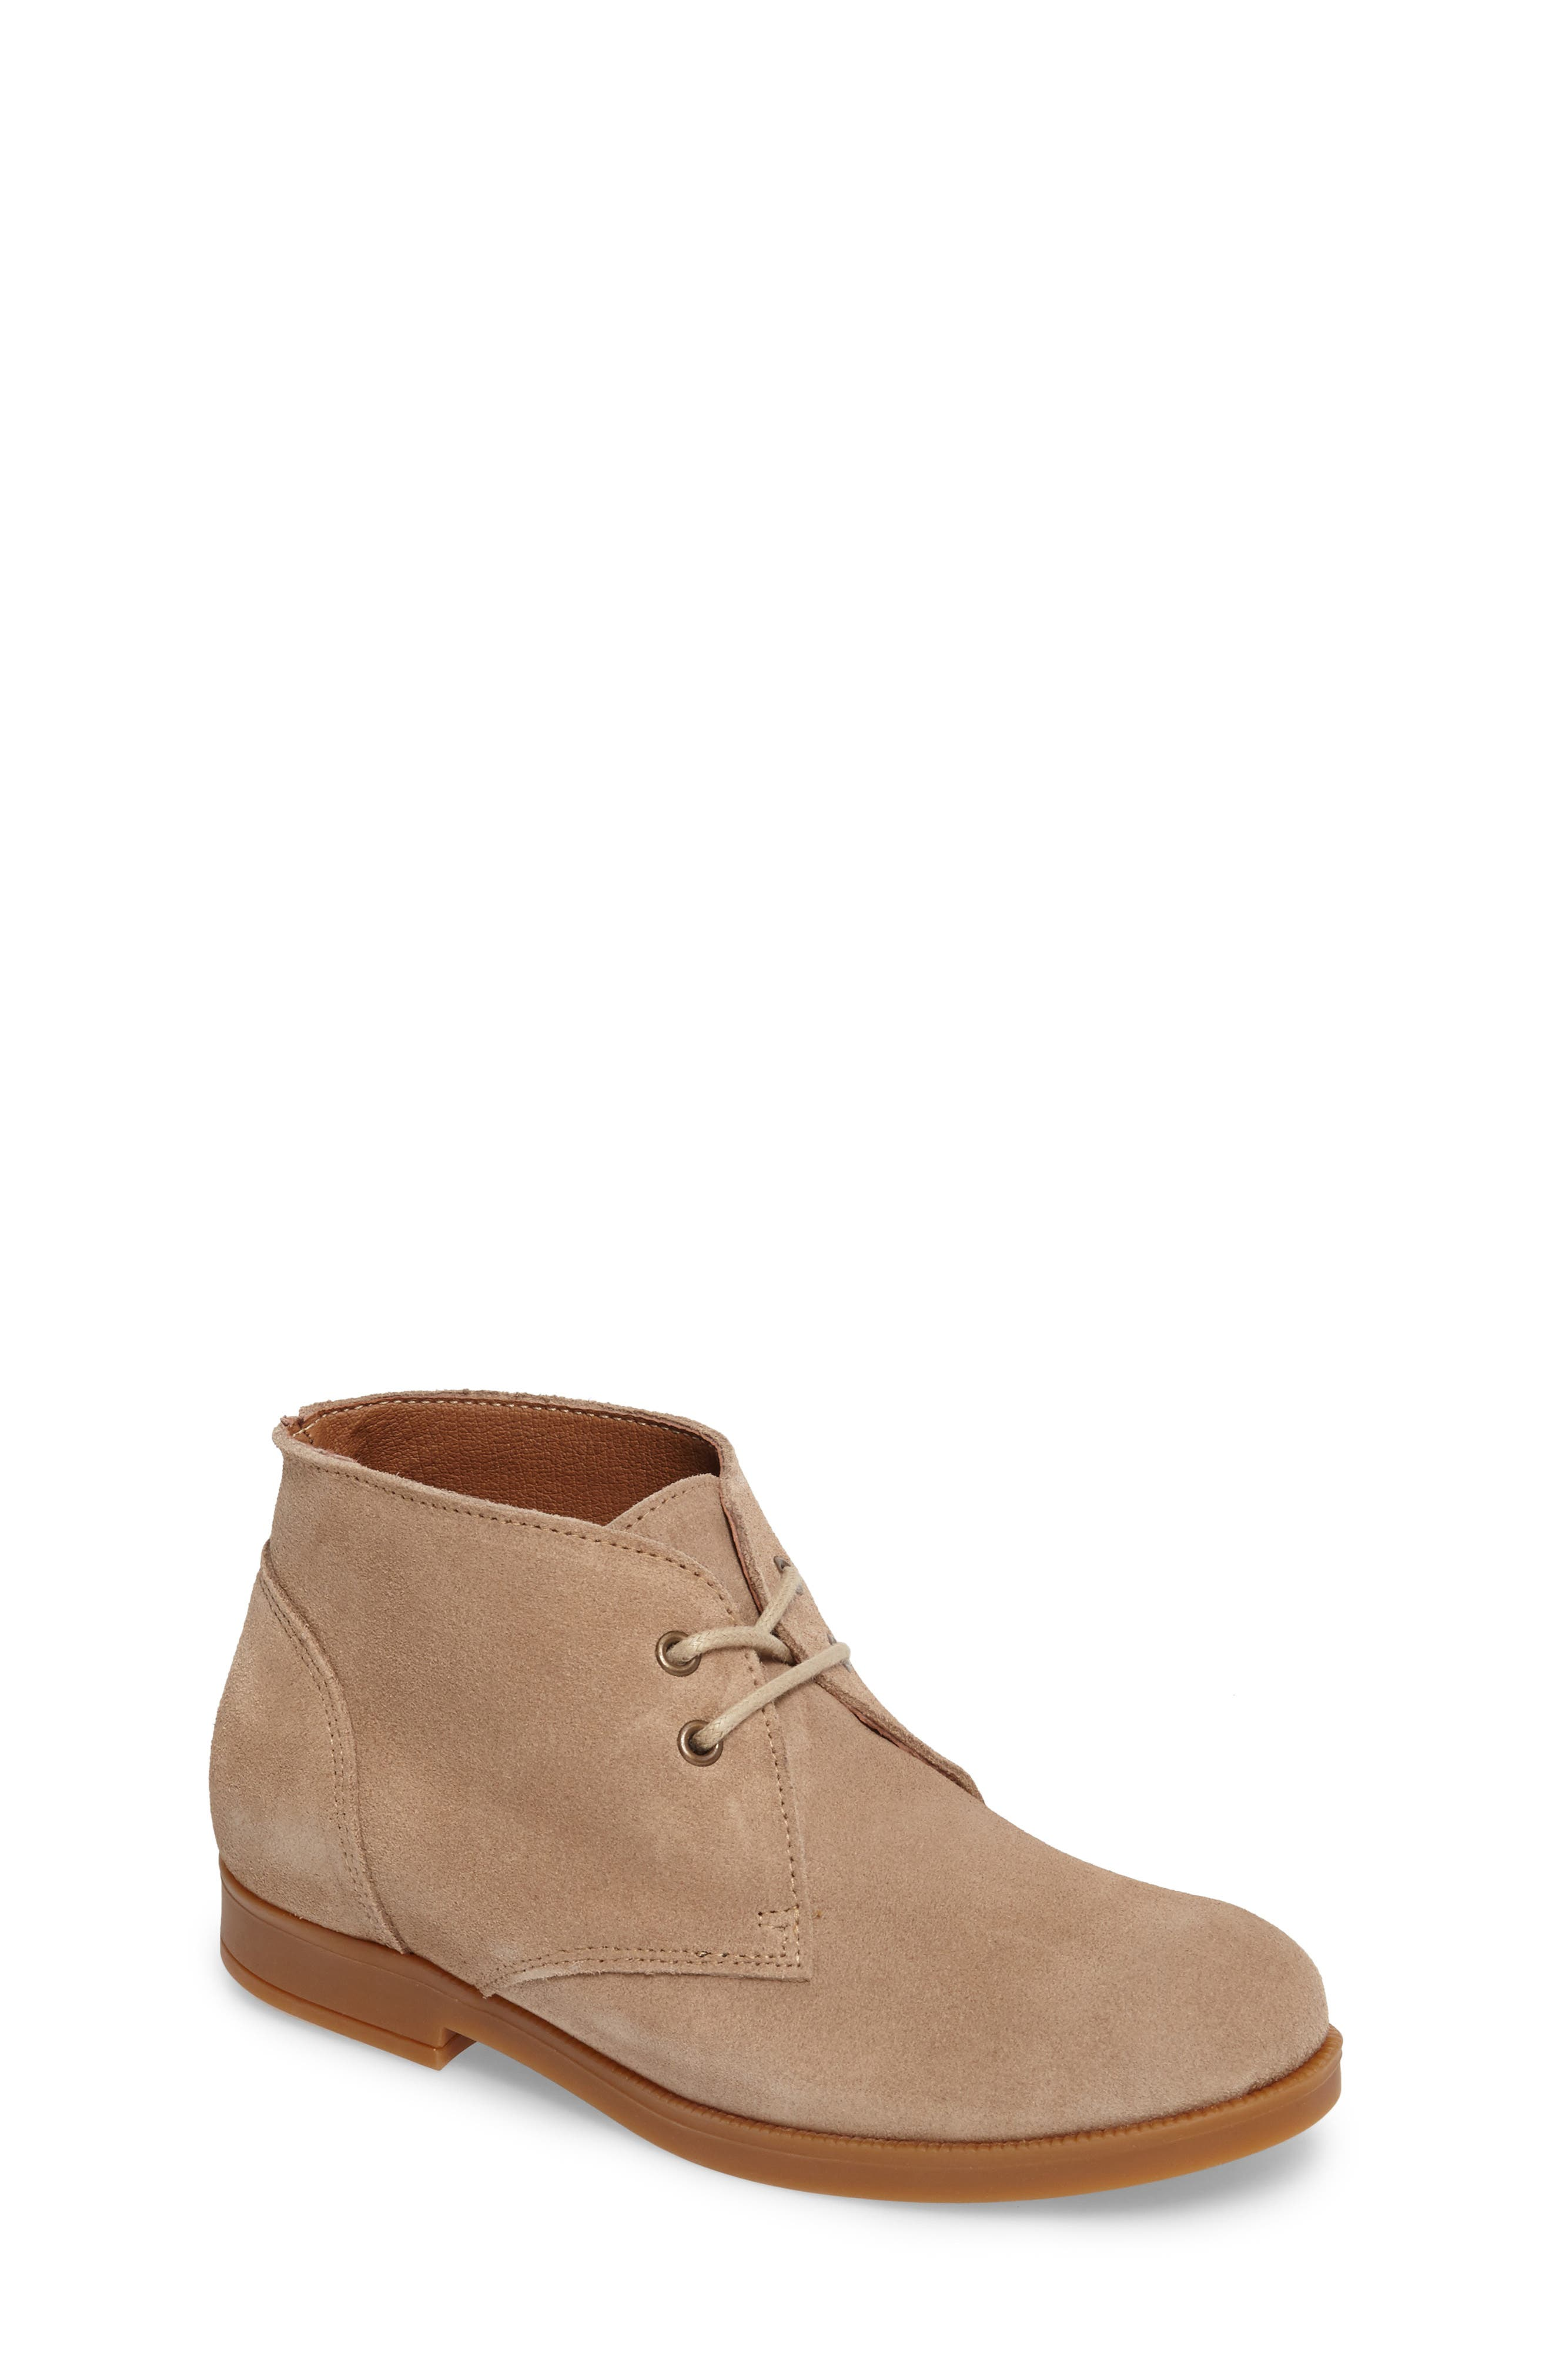 Vince Camuto Kamin Chukka Boot (Toddler, Little Kid & Big Kid)